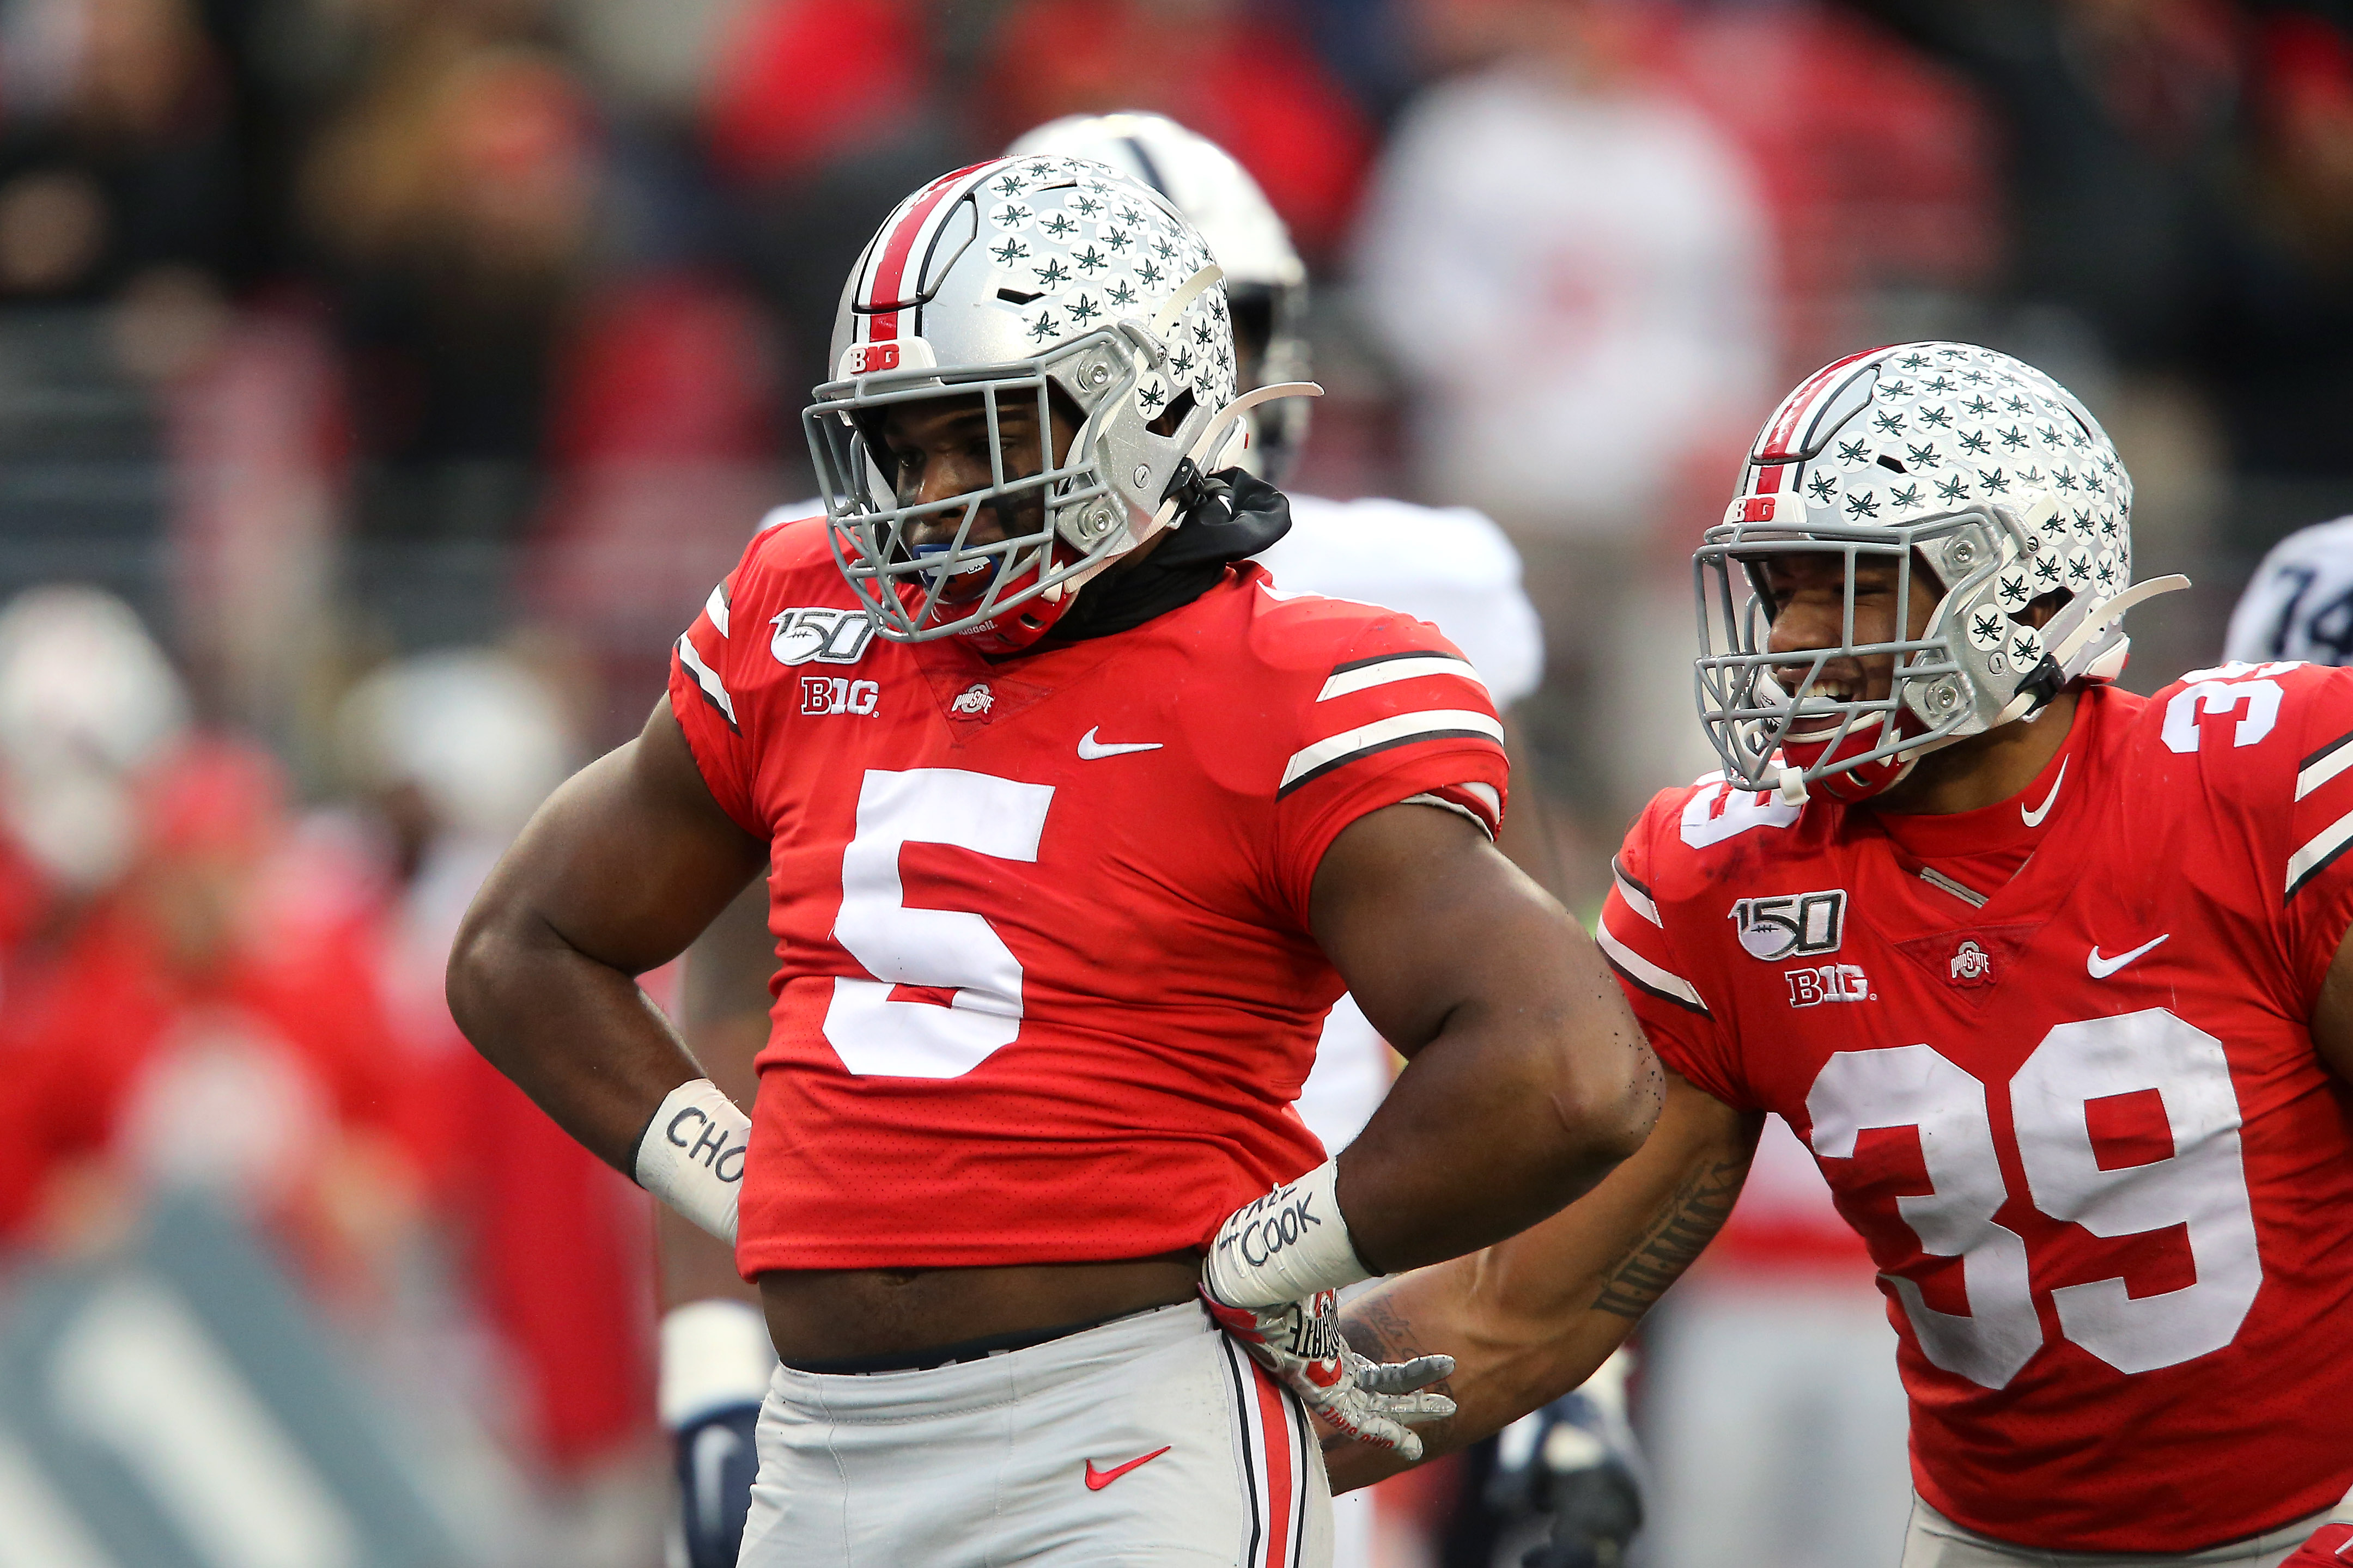 Fox Announces Ohio State Penn State Was Their Highest Rated